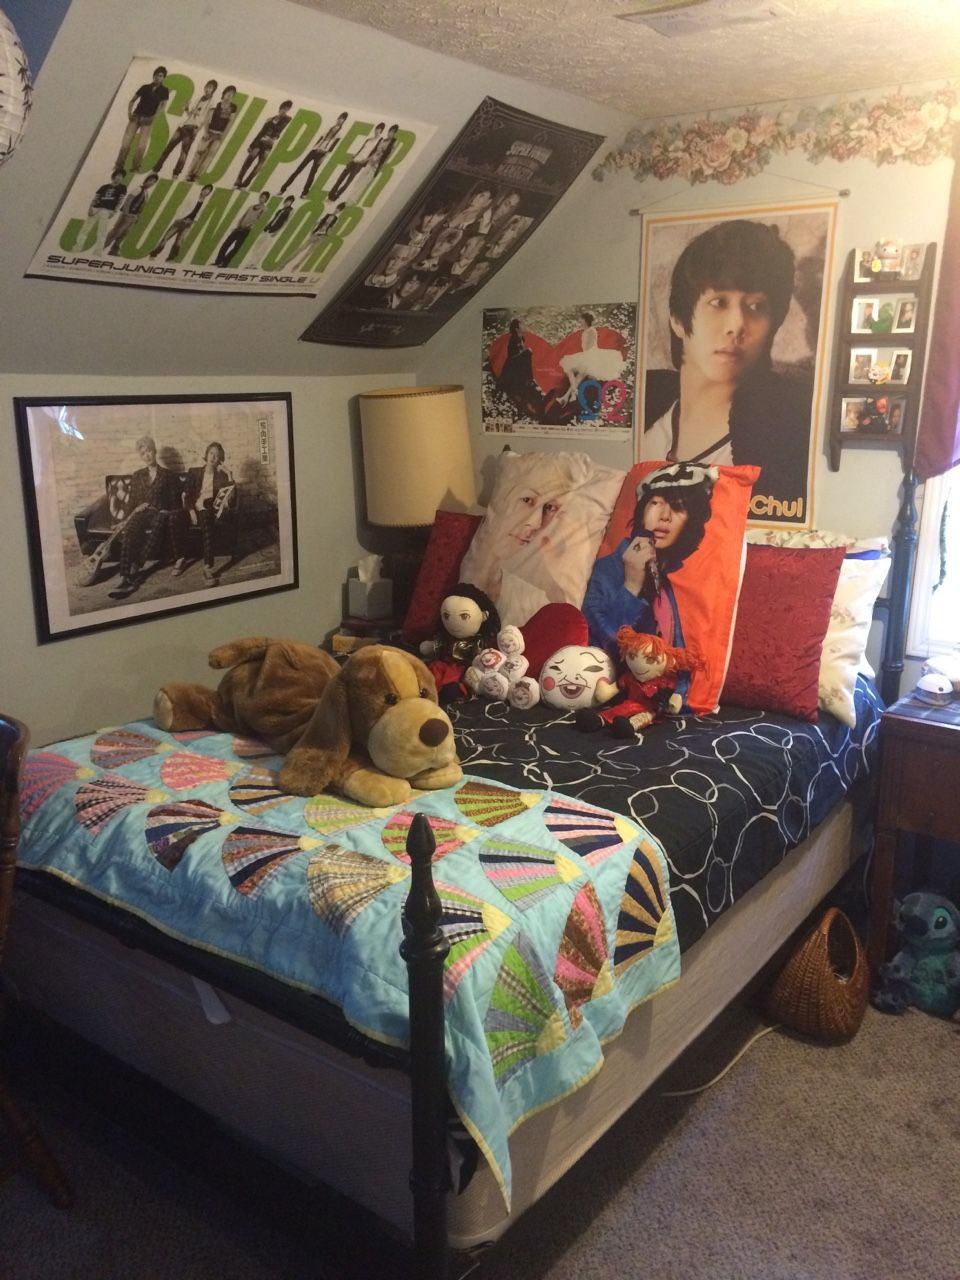 kpop bedroom mostly suju heechul asianfanfics